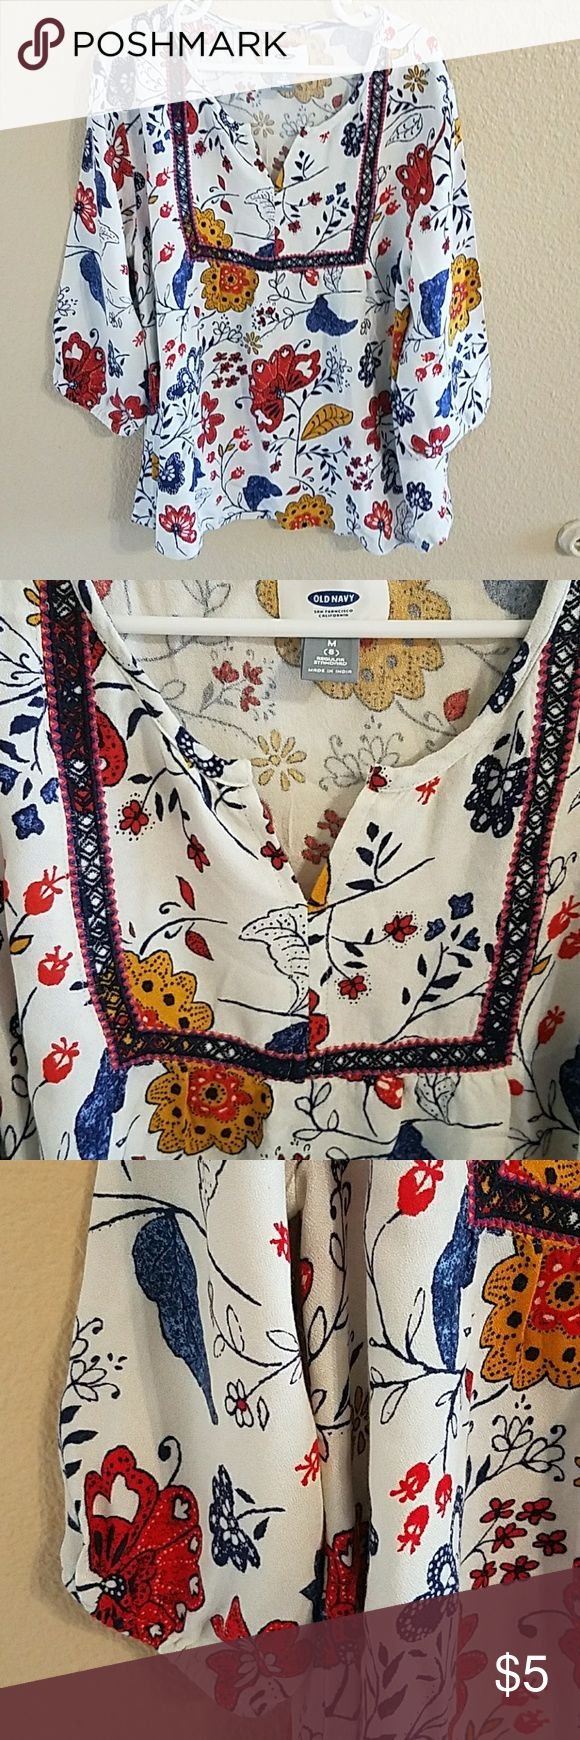 Old Navy Boho Top Size 8 🎉HP🎉 🎉HP🎉 Adorable! Boho Style Old Navy Floral Top Size 8  3/4 Sleeve V Neck and Embroidered Detail. Soft and Silky. Excellent condition worn once Old Navy Shirts & Tops